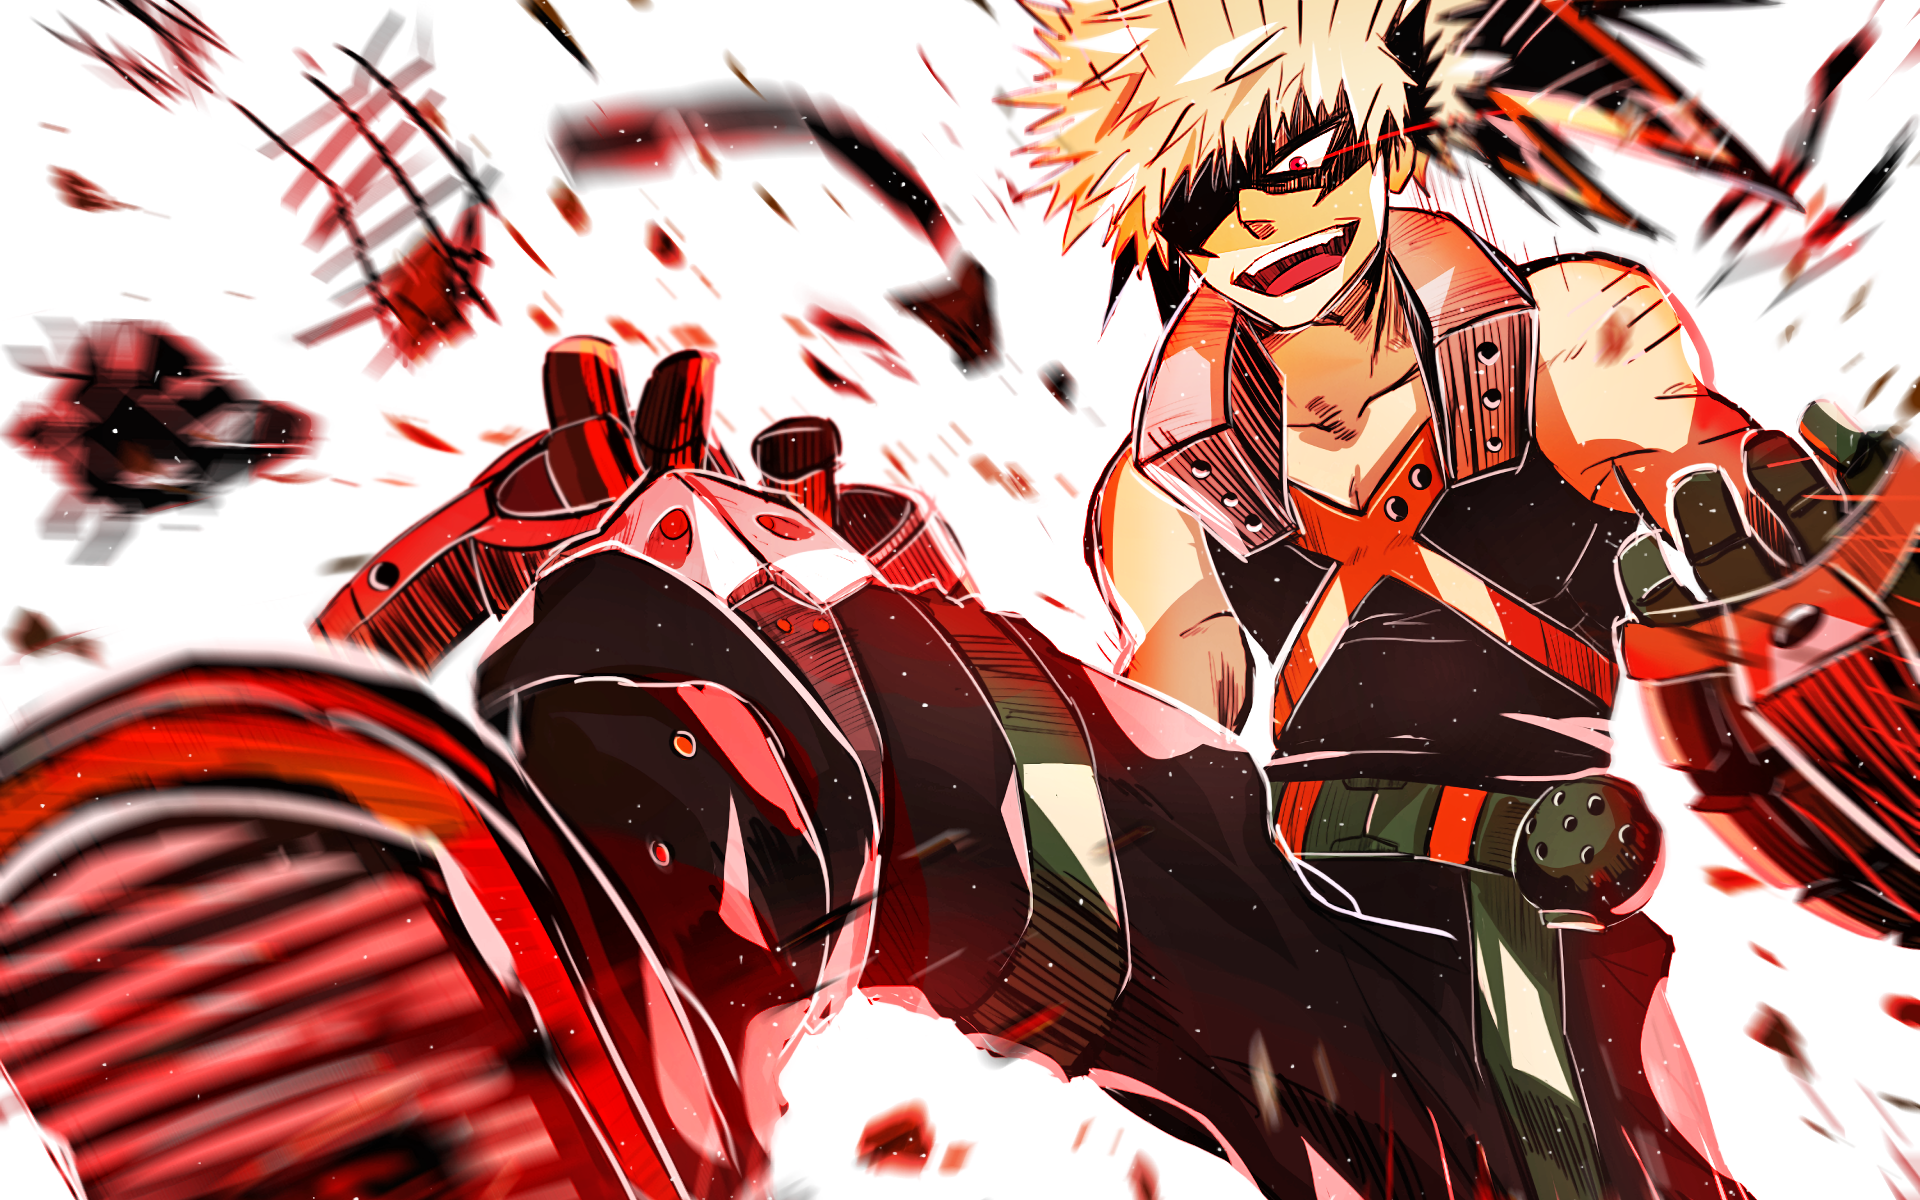 Katsuki Wallpaper Posted By Zoey Sellers